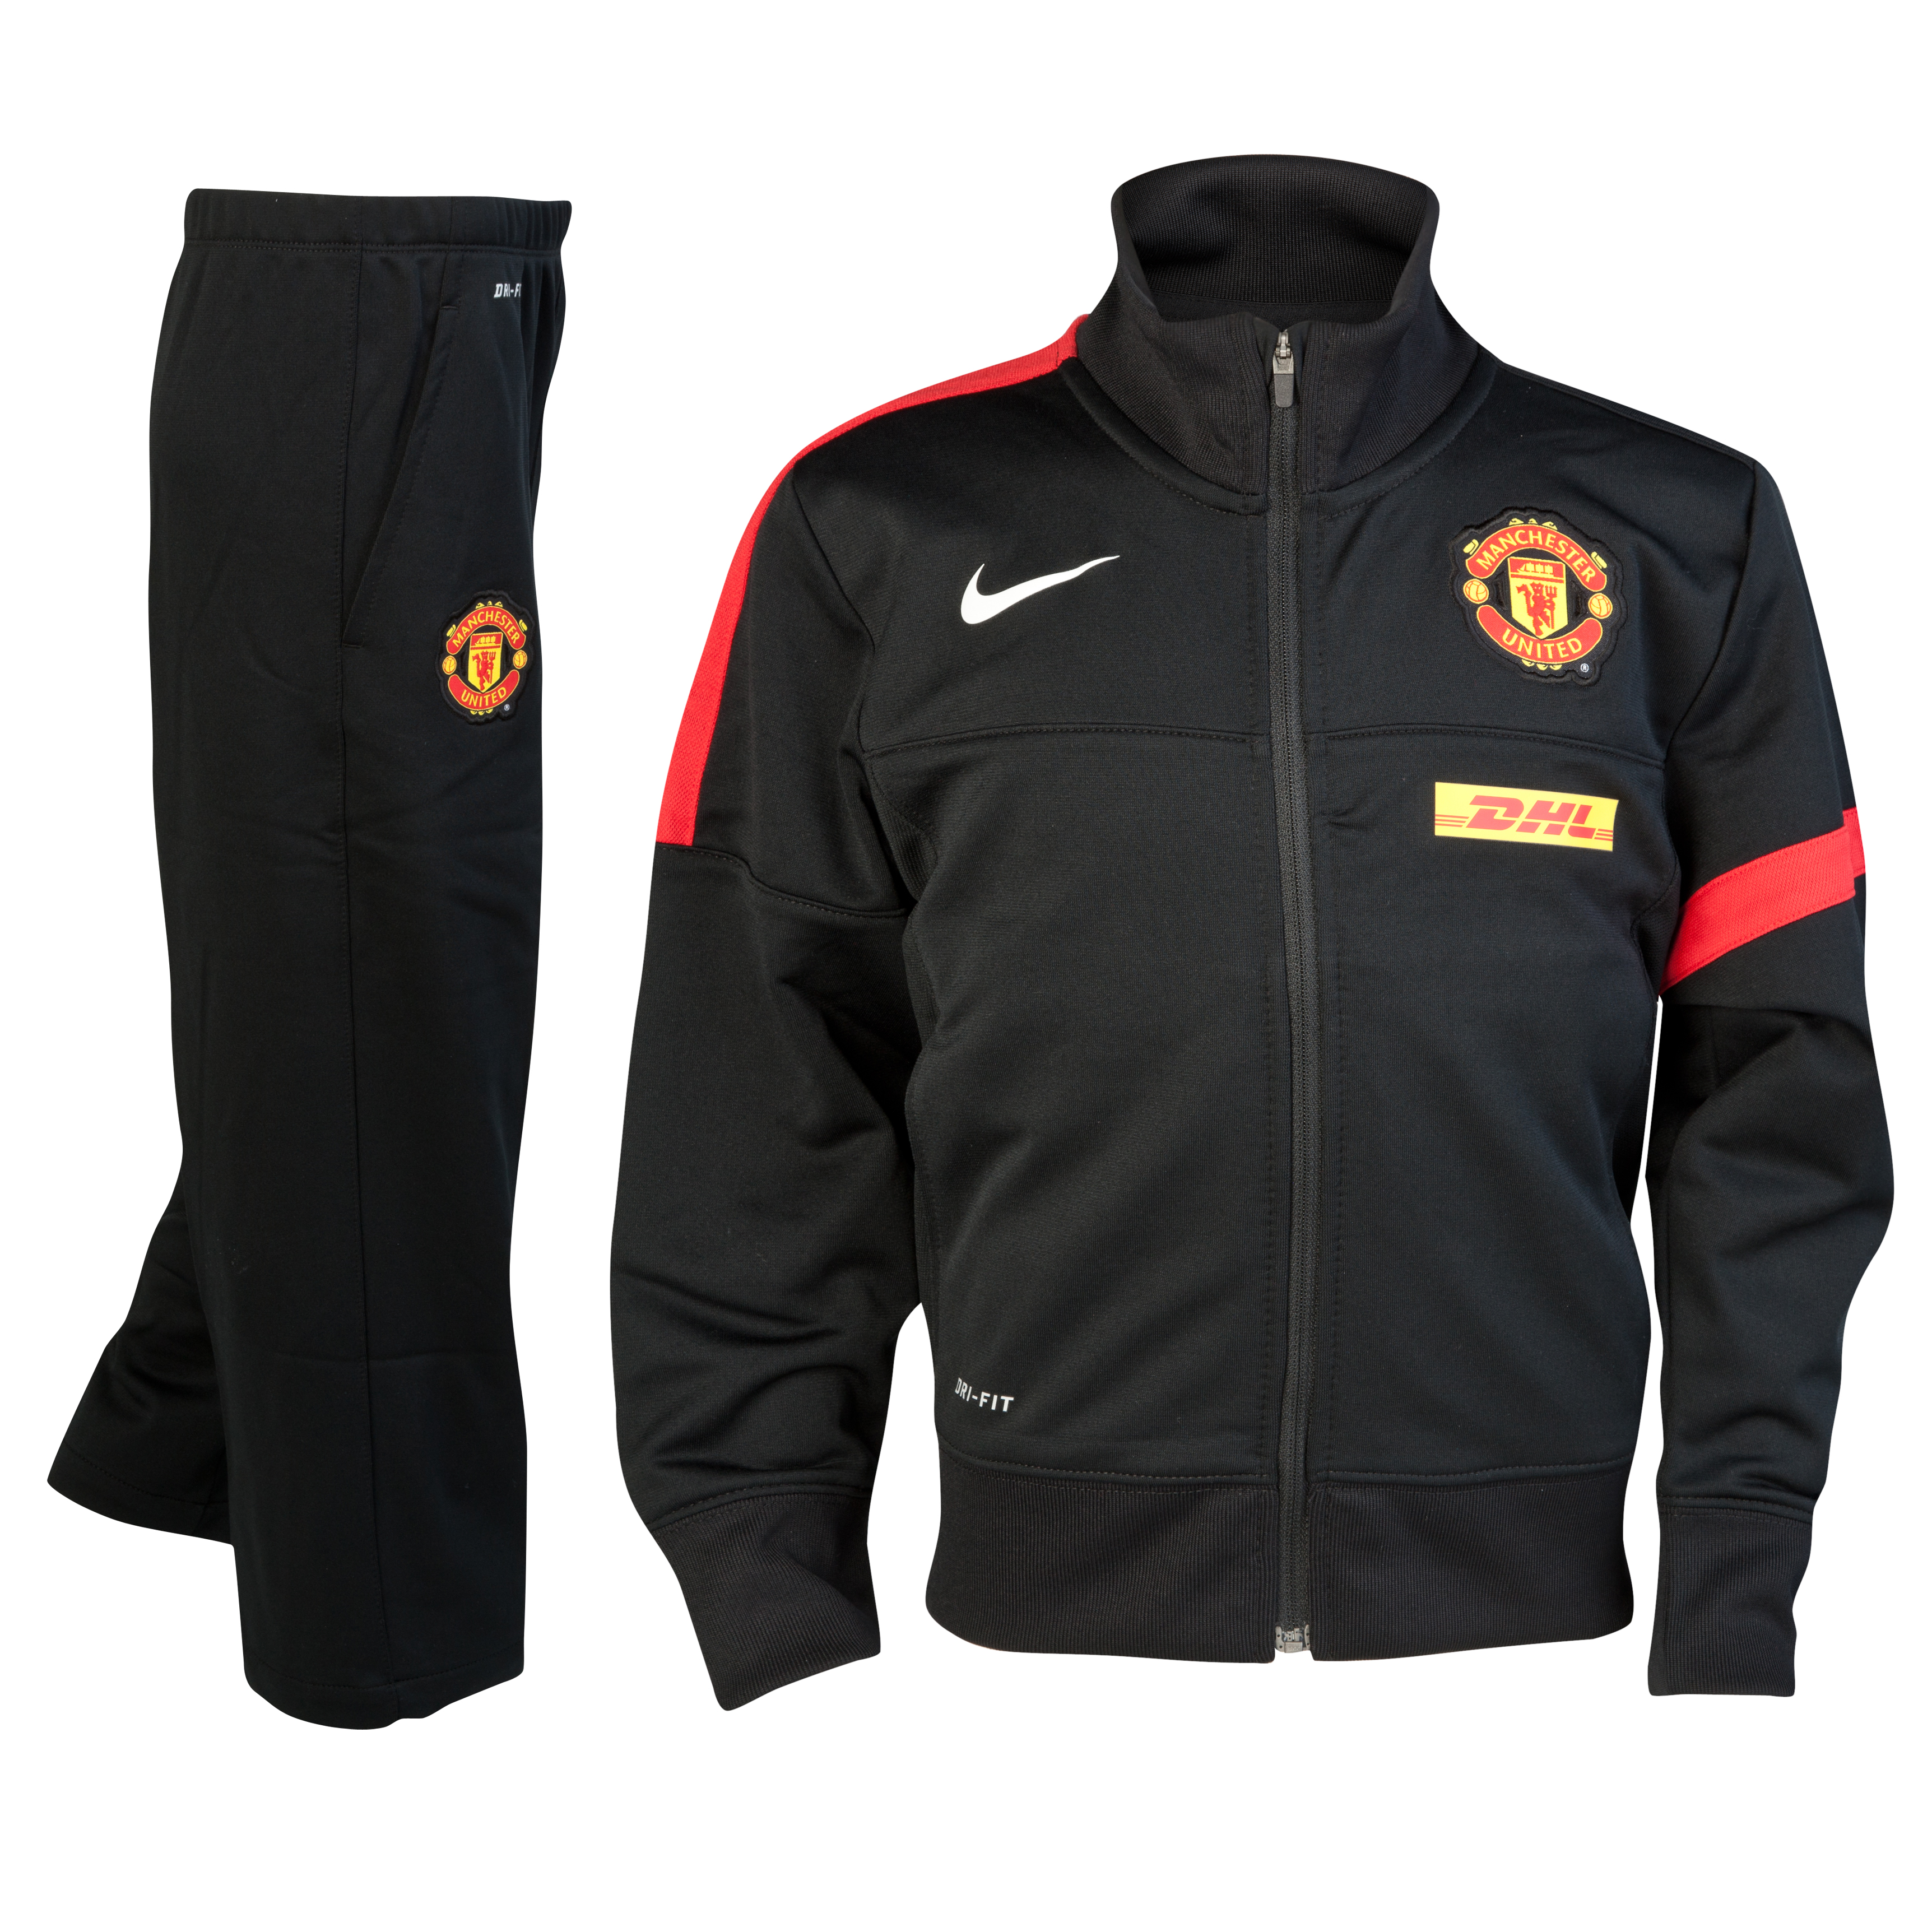 Manchester United Sideline Warm-up Knit Tracksuit - Black/Black/Diablo Red/White - Little Kids